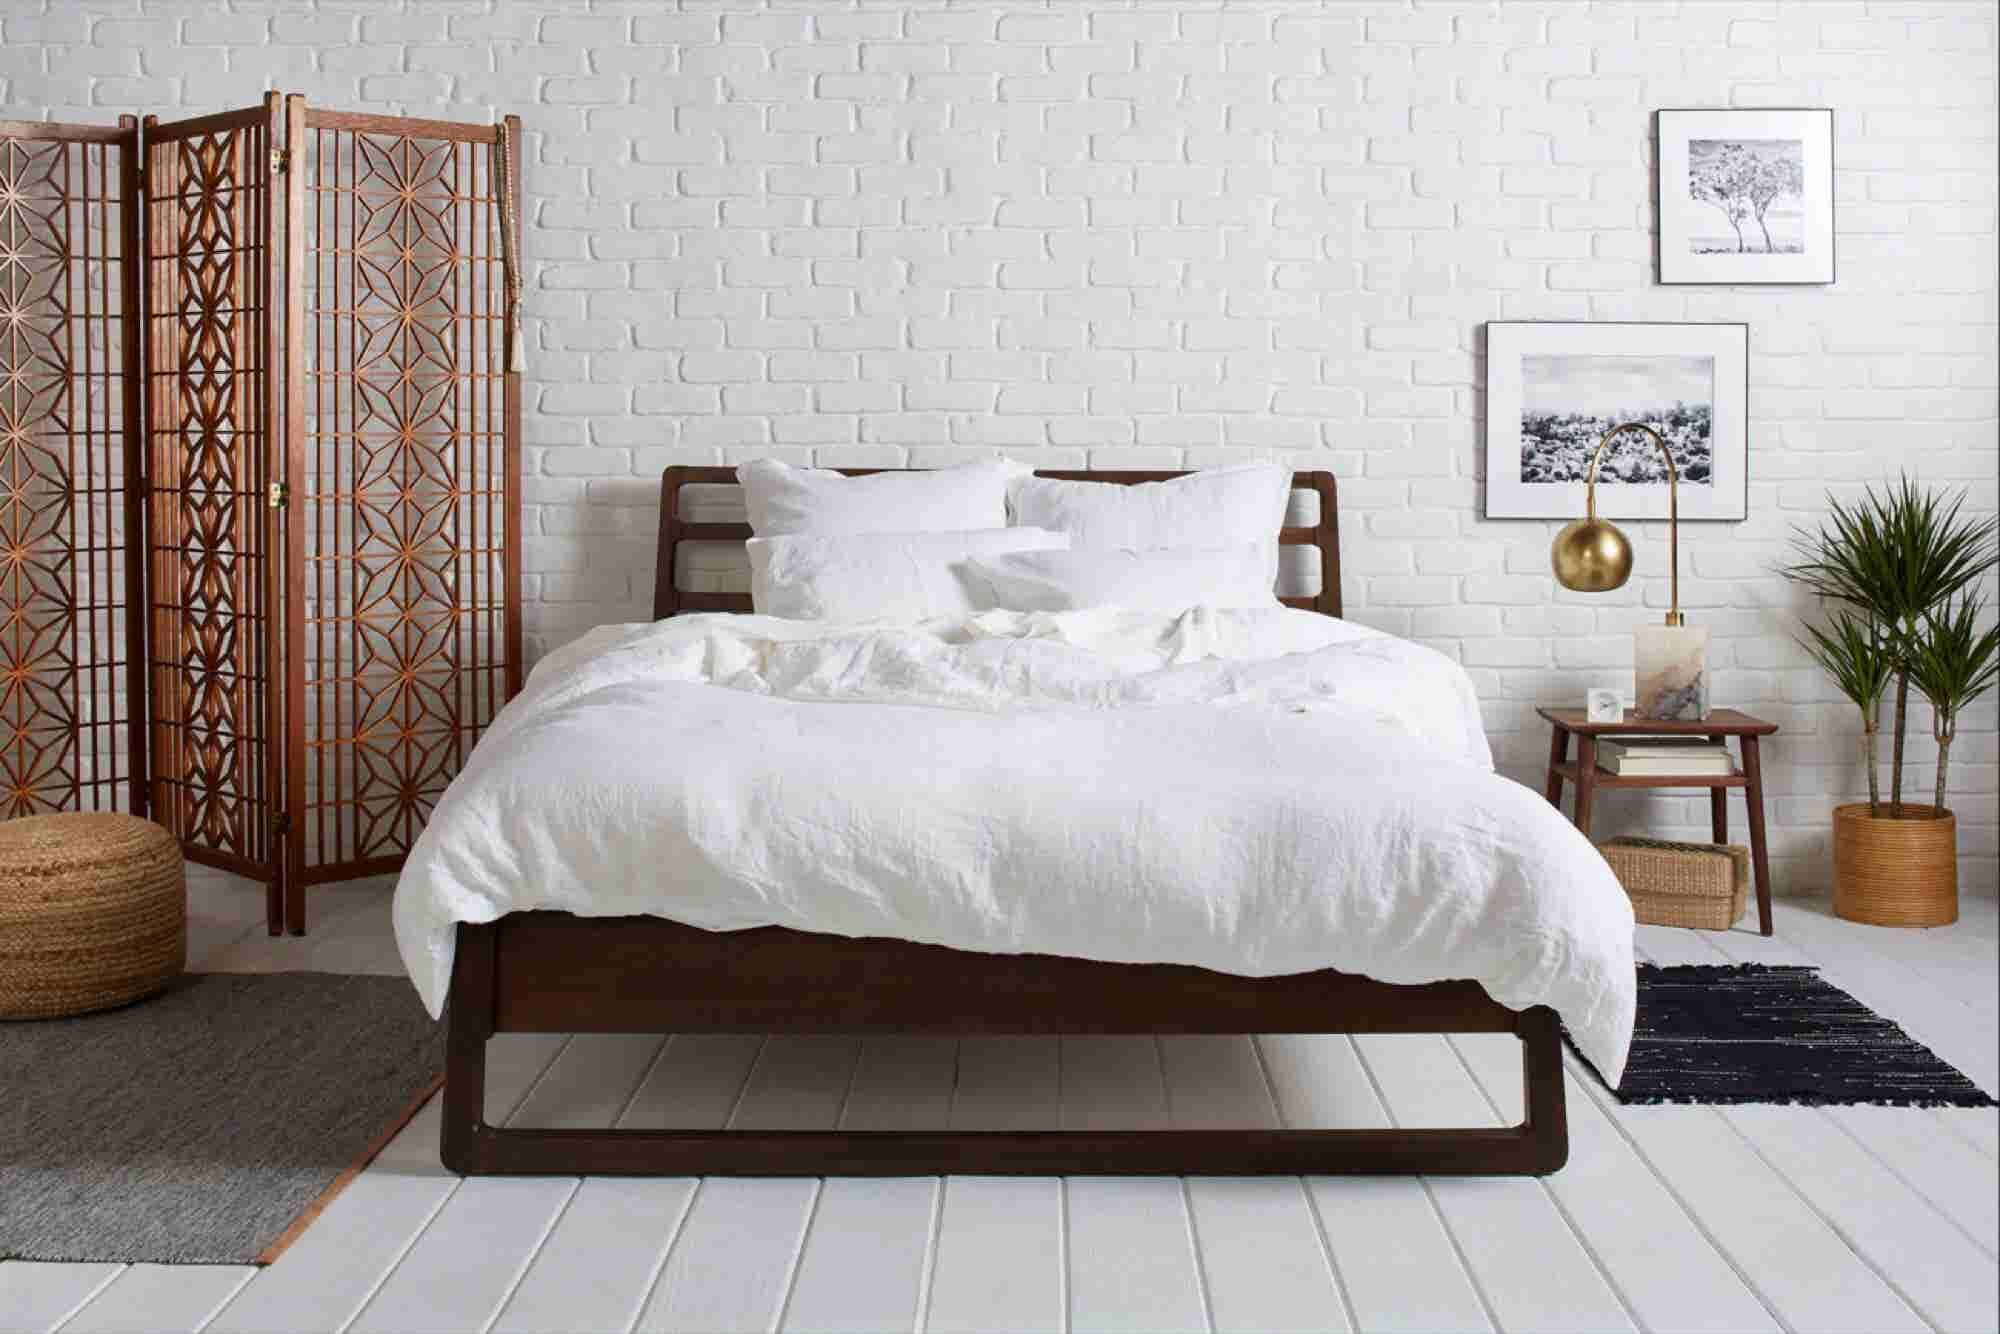 This Brand Is Changing How We Shop for Bed Sheets